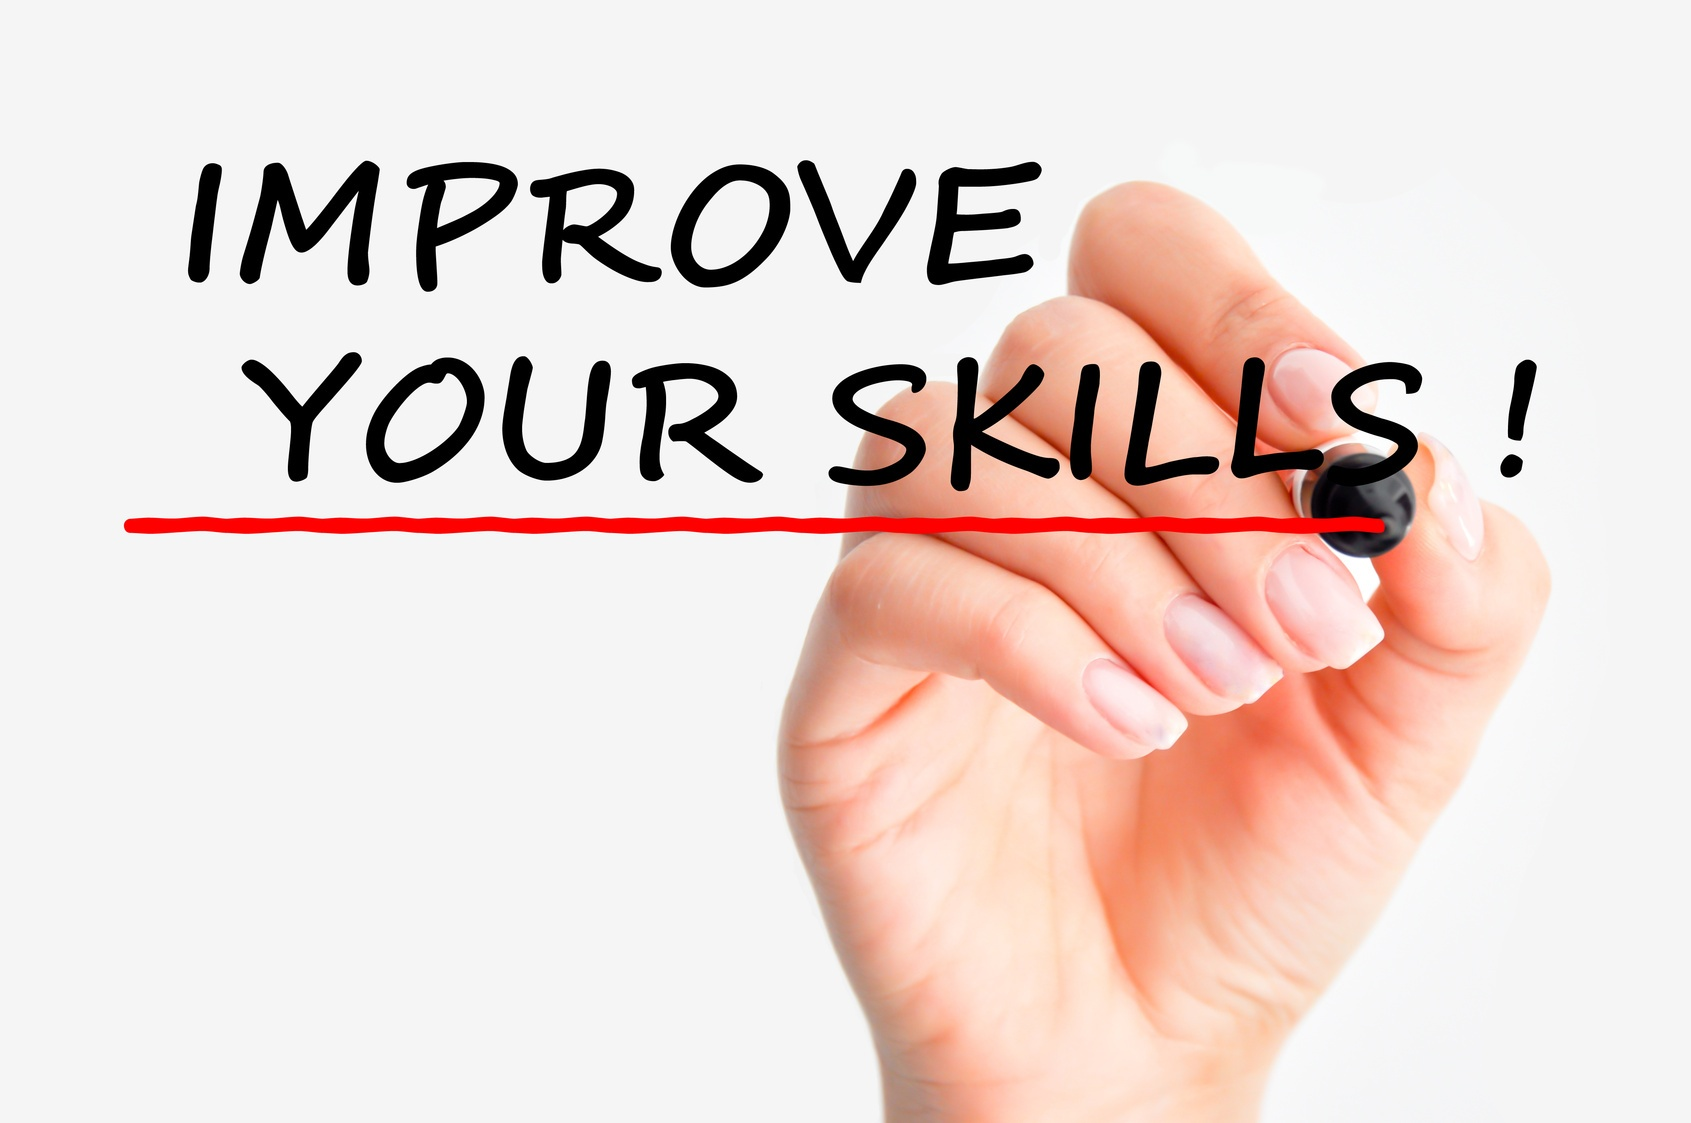 4 Essential Sales Skills to Focus on Improving